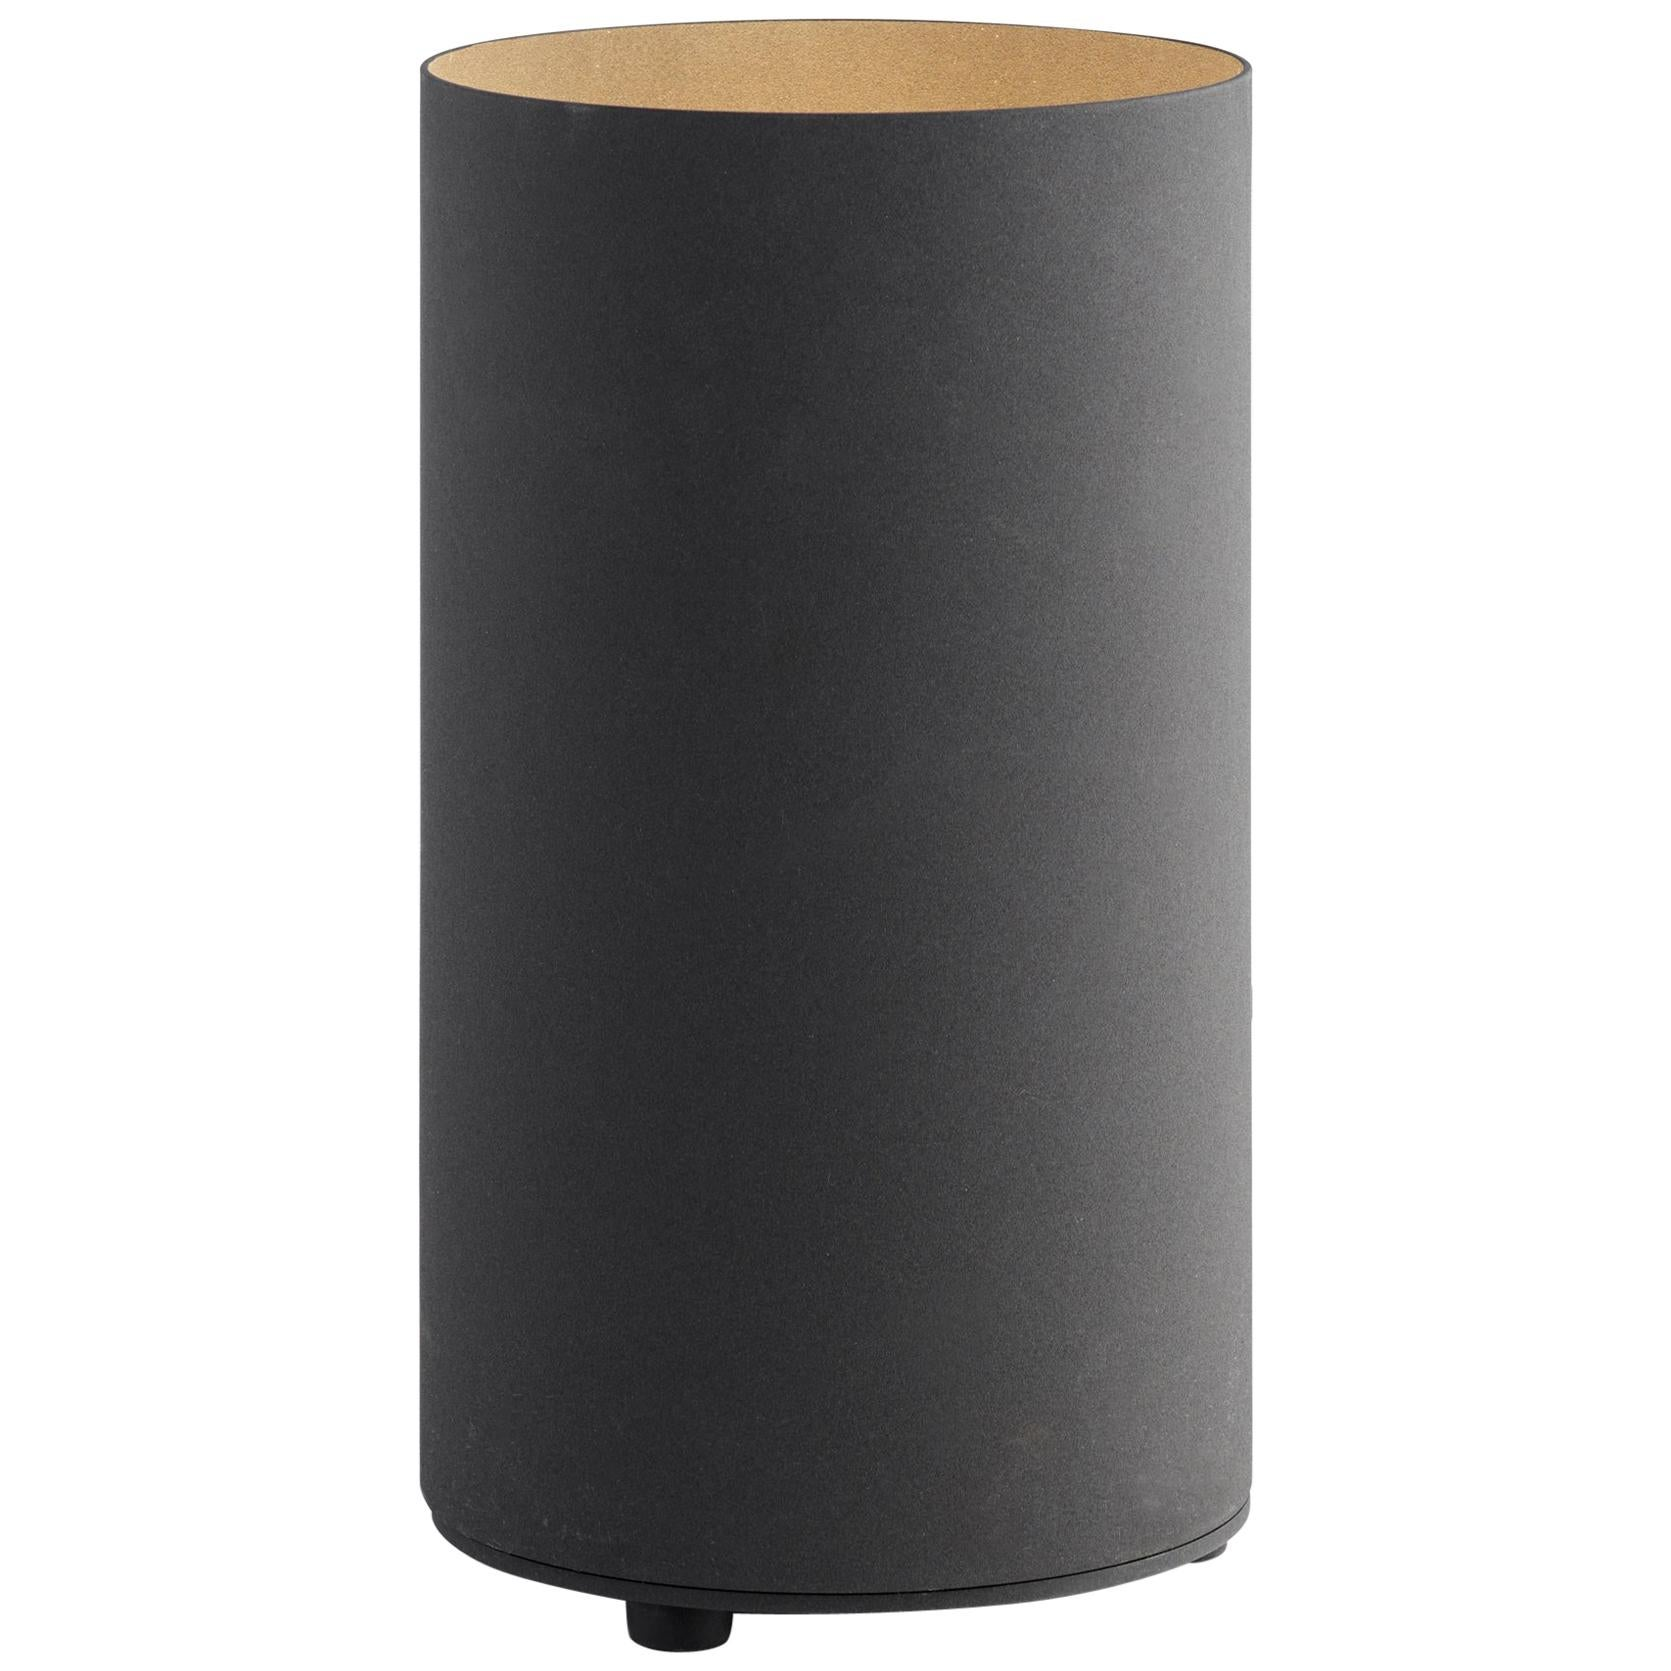 Tekna Floor Od LED Floor Lamp in Black with Gold-Colored Interior